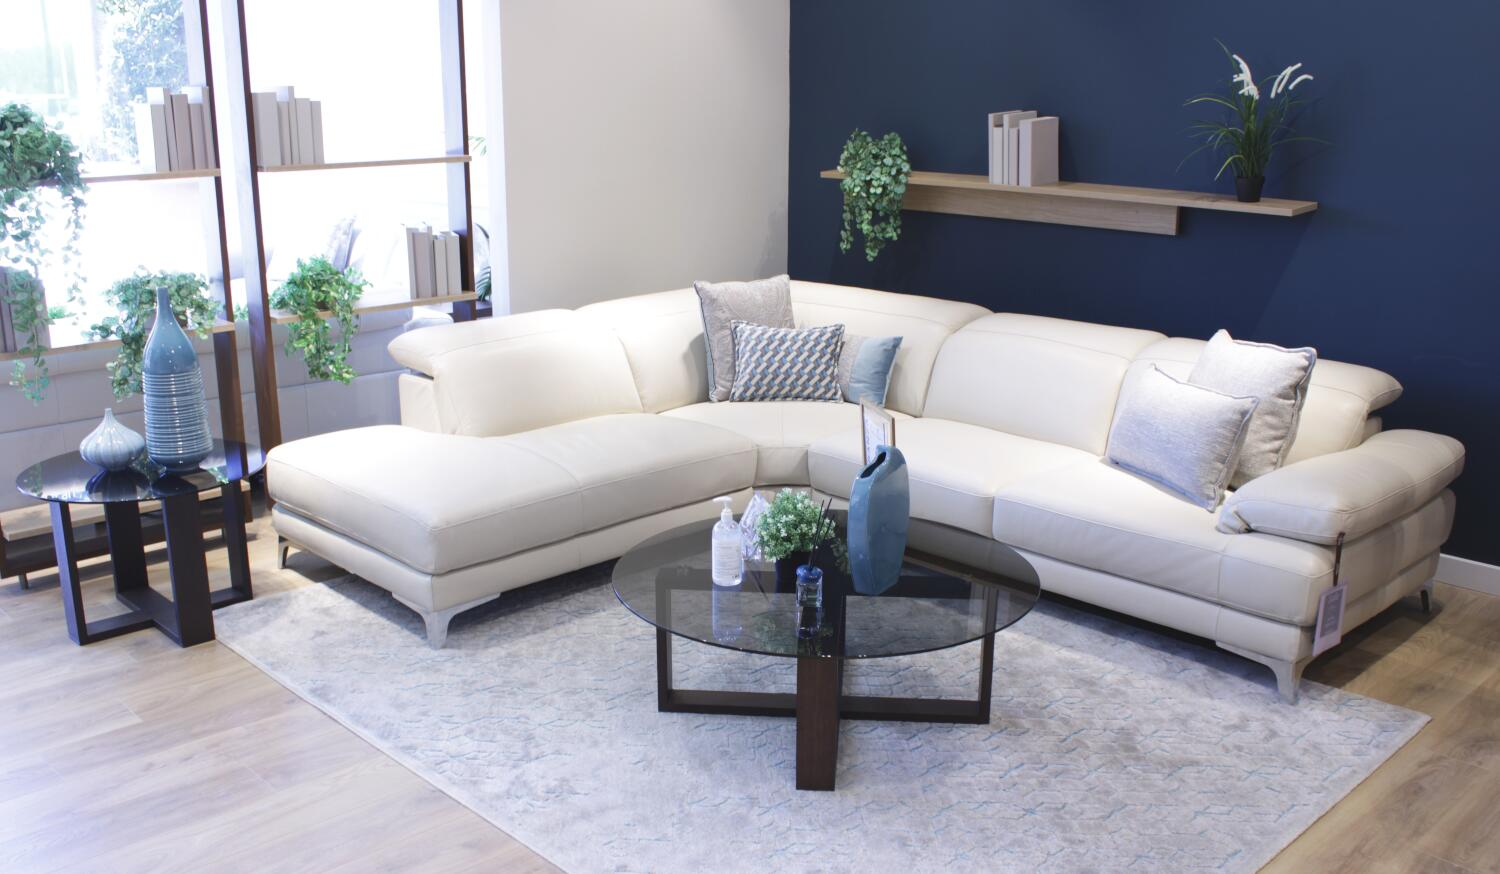 Sofas and sectionals offer the same degree of thoughtful ergonomics. SPERANZA - Natuzzi Editions